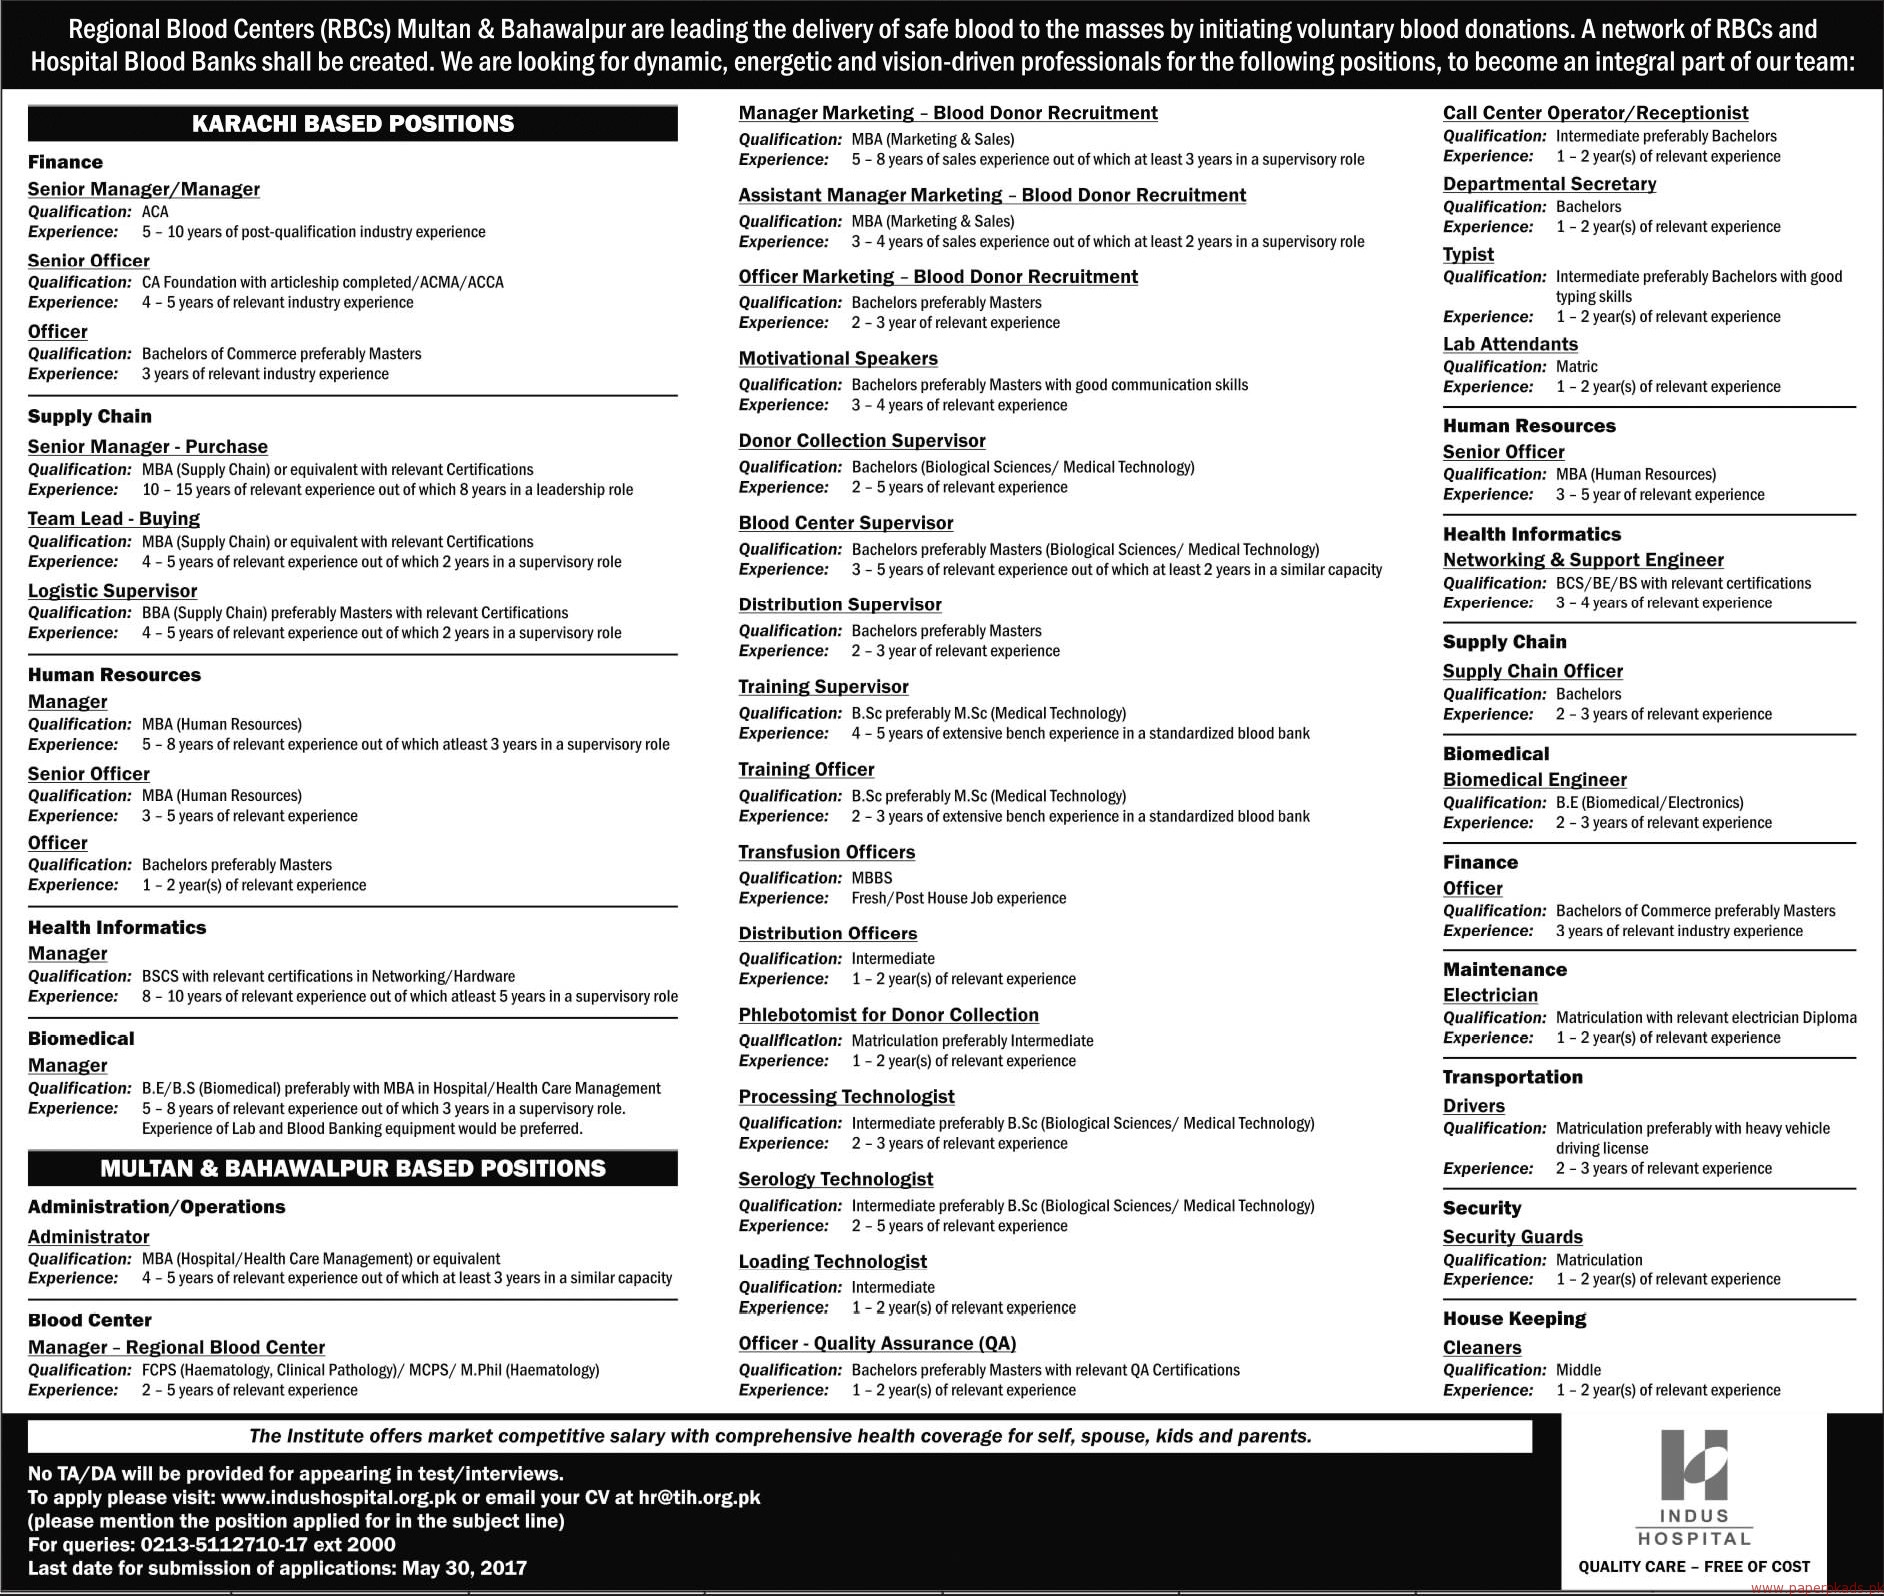 The Indus Hospital Jobs Part 2